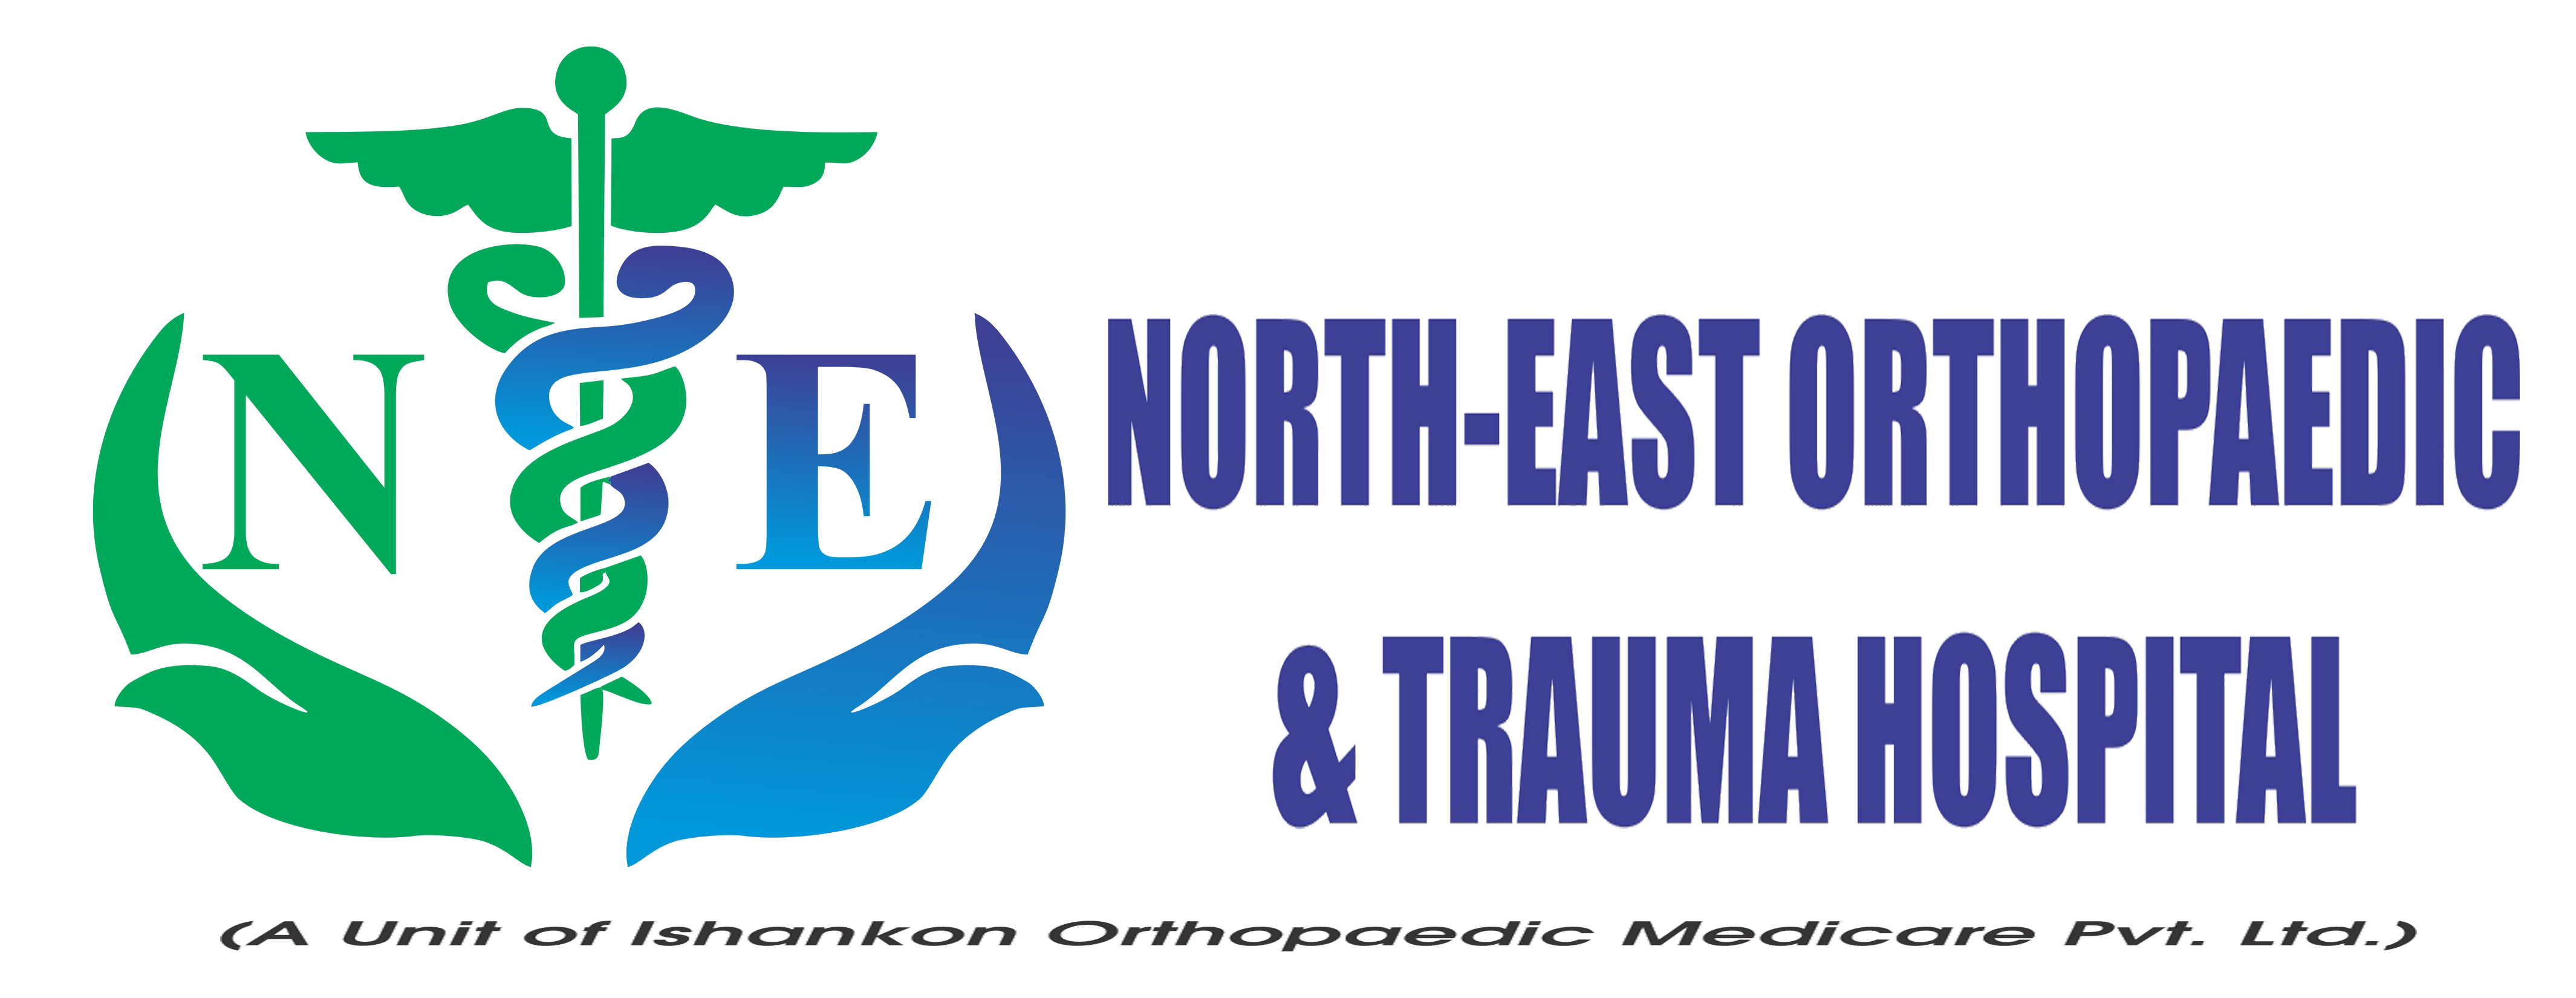 Logo for North East Orthopaedic & Trauma Hospital